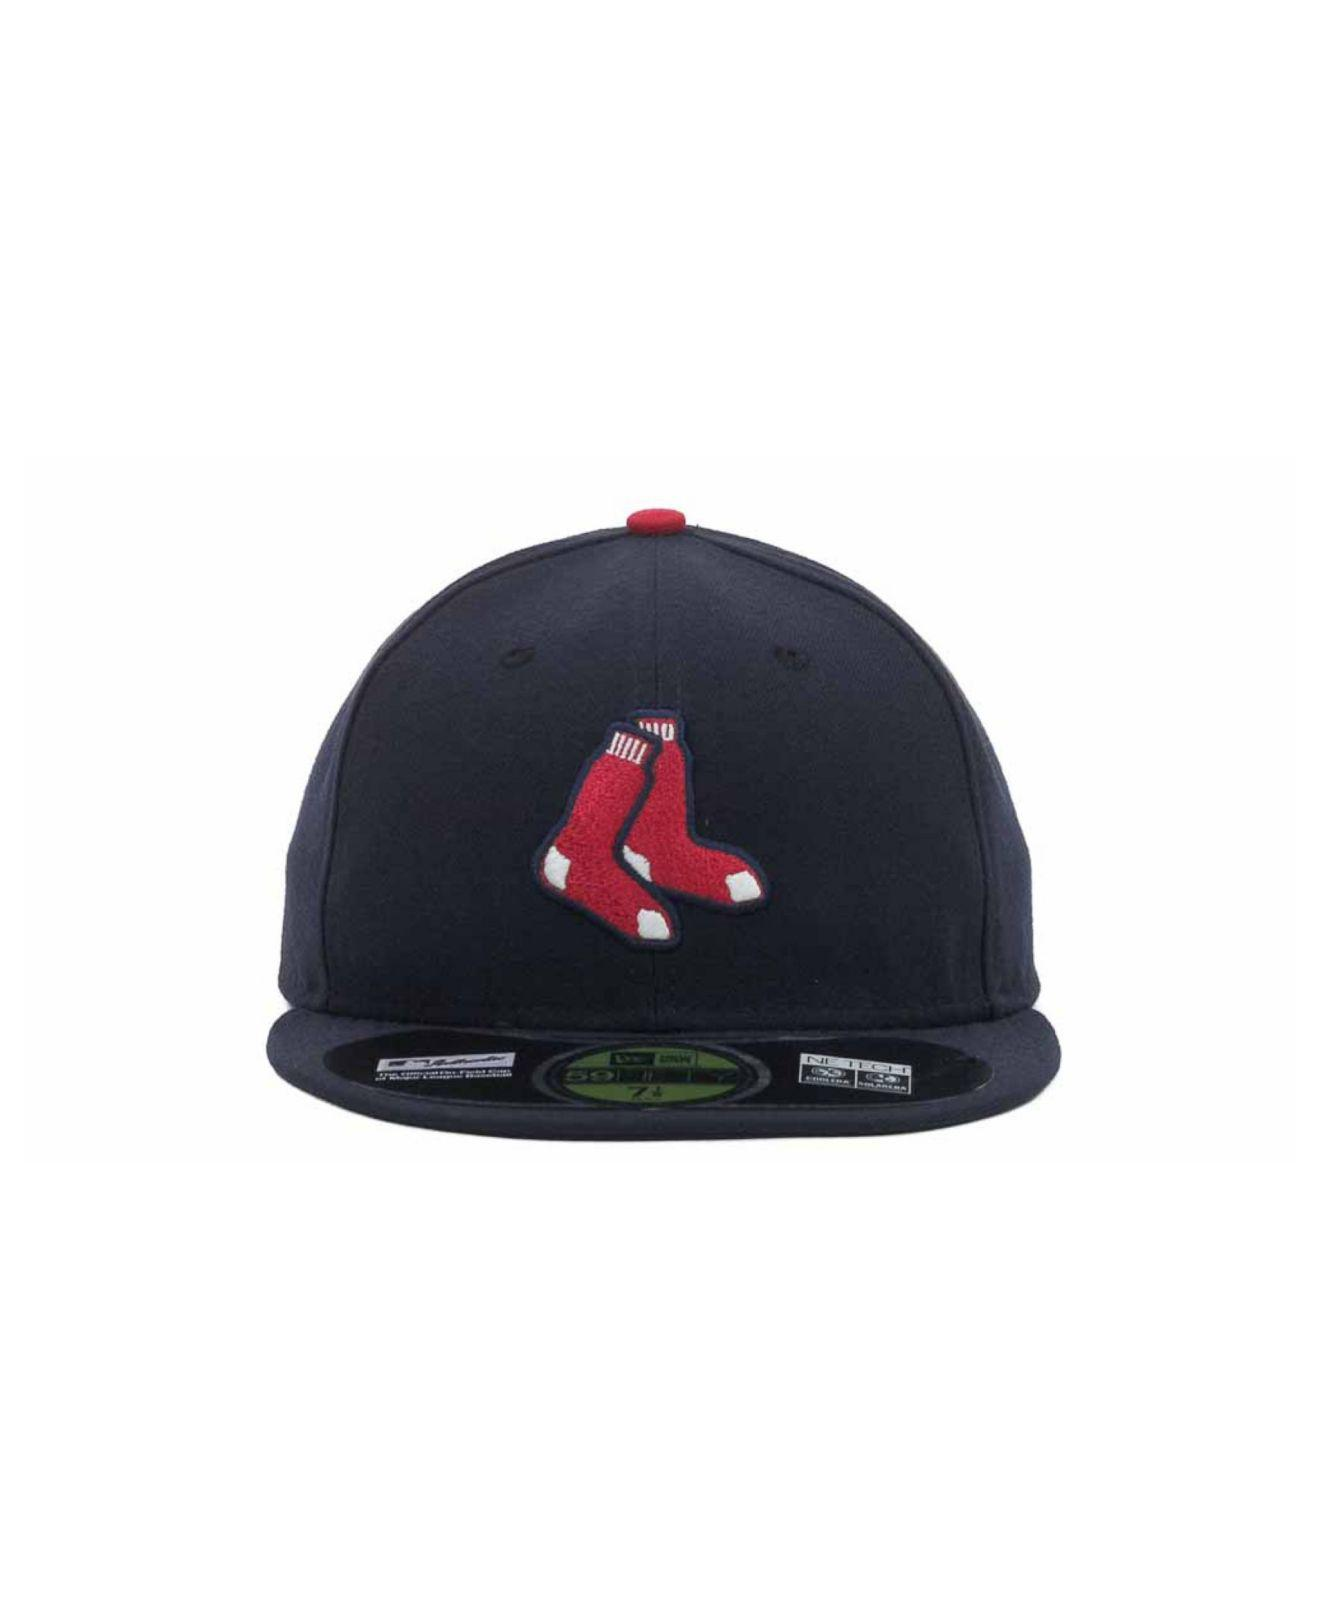 size 40 a519f 38387 Lyst - KTZ Boston Red Sox Authentic Collection 59fifty Hat in Black for Men